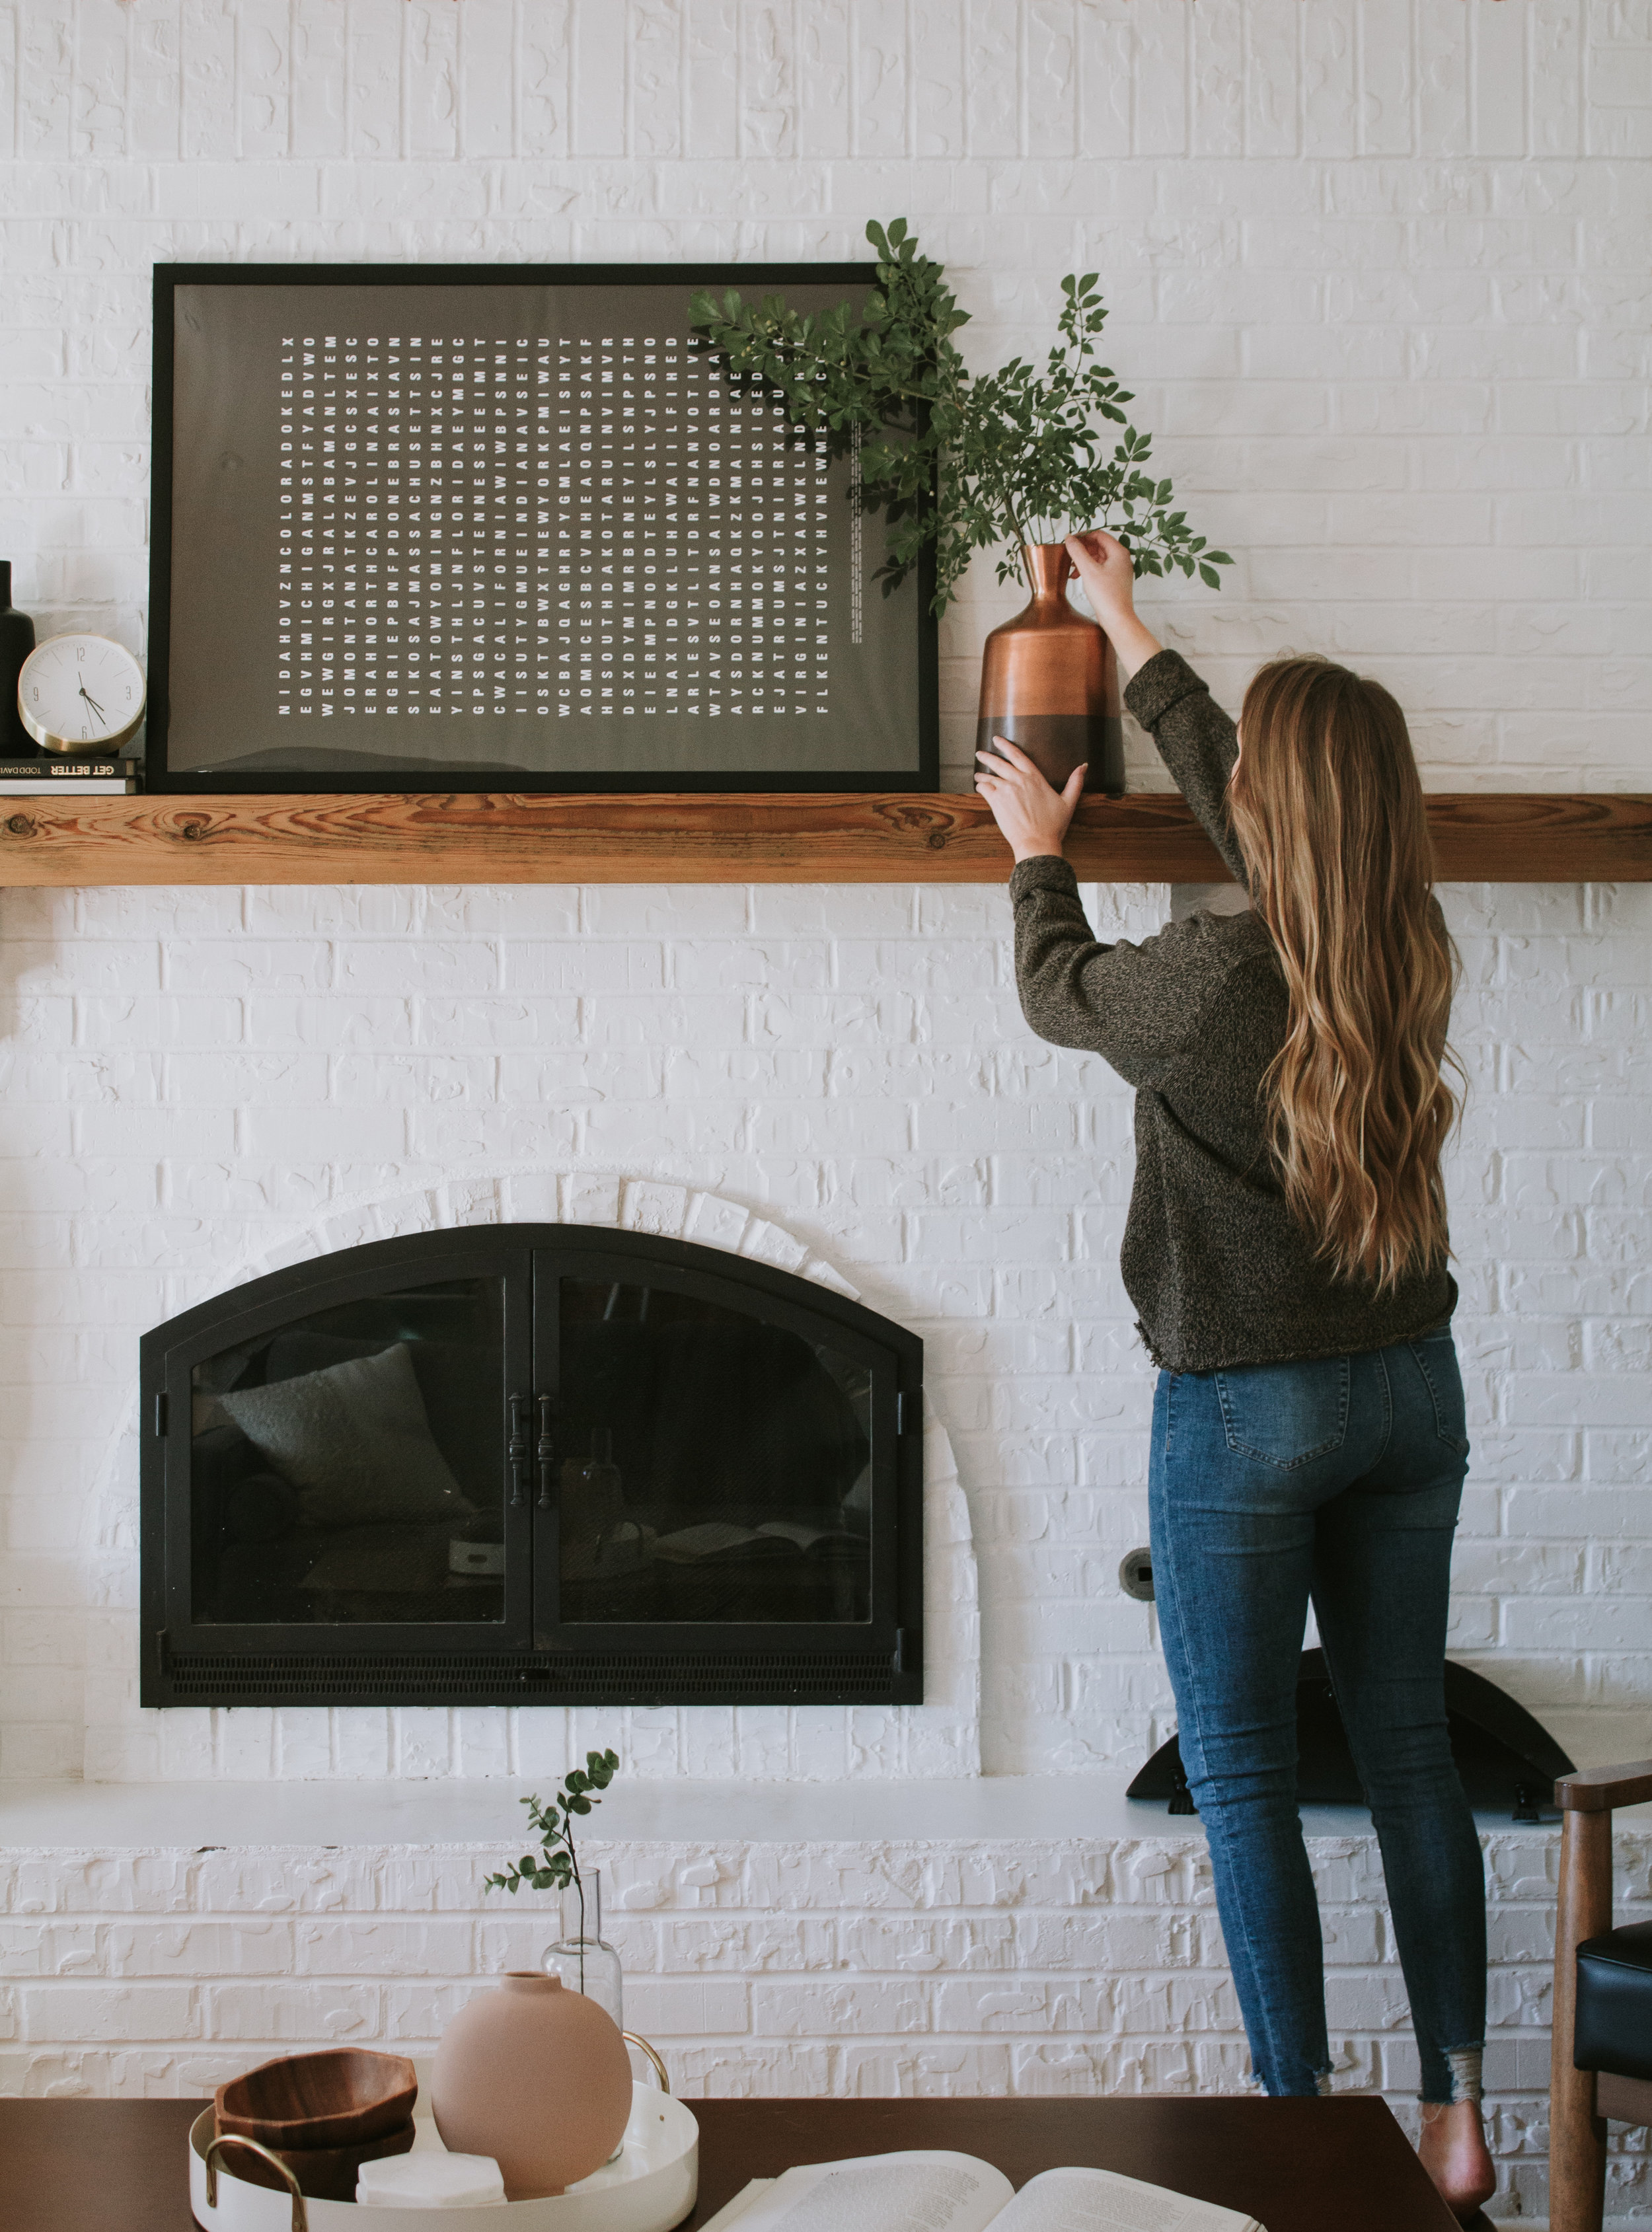 How to design your home when you change your style a lot - Nadine Stay. Interior design tips by Danica of Nadine Stay and Nadine Speaks - the podcast. Home design advice.